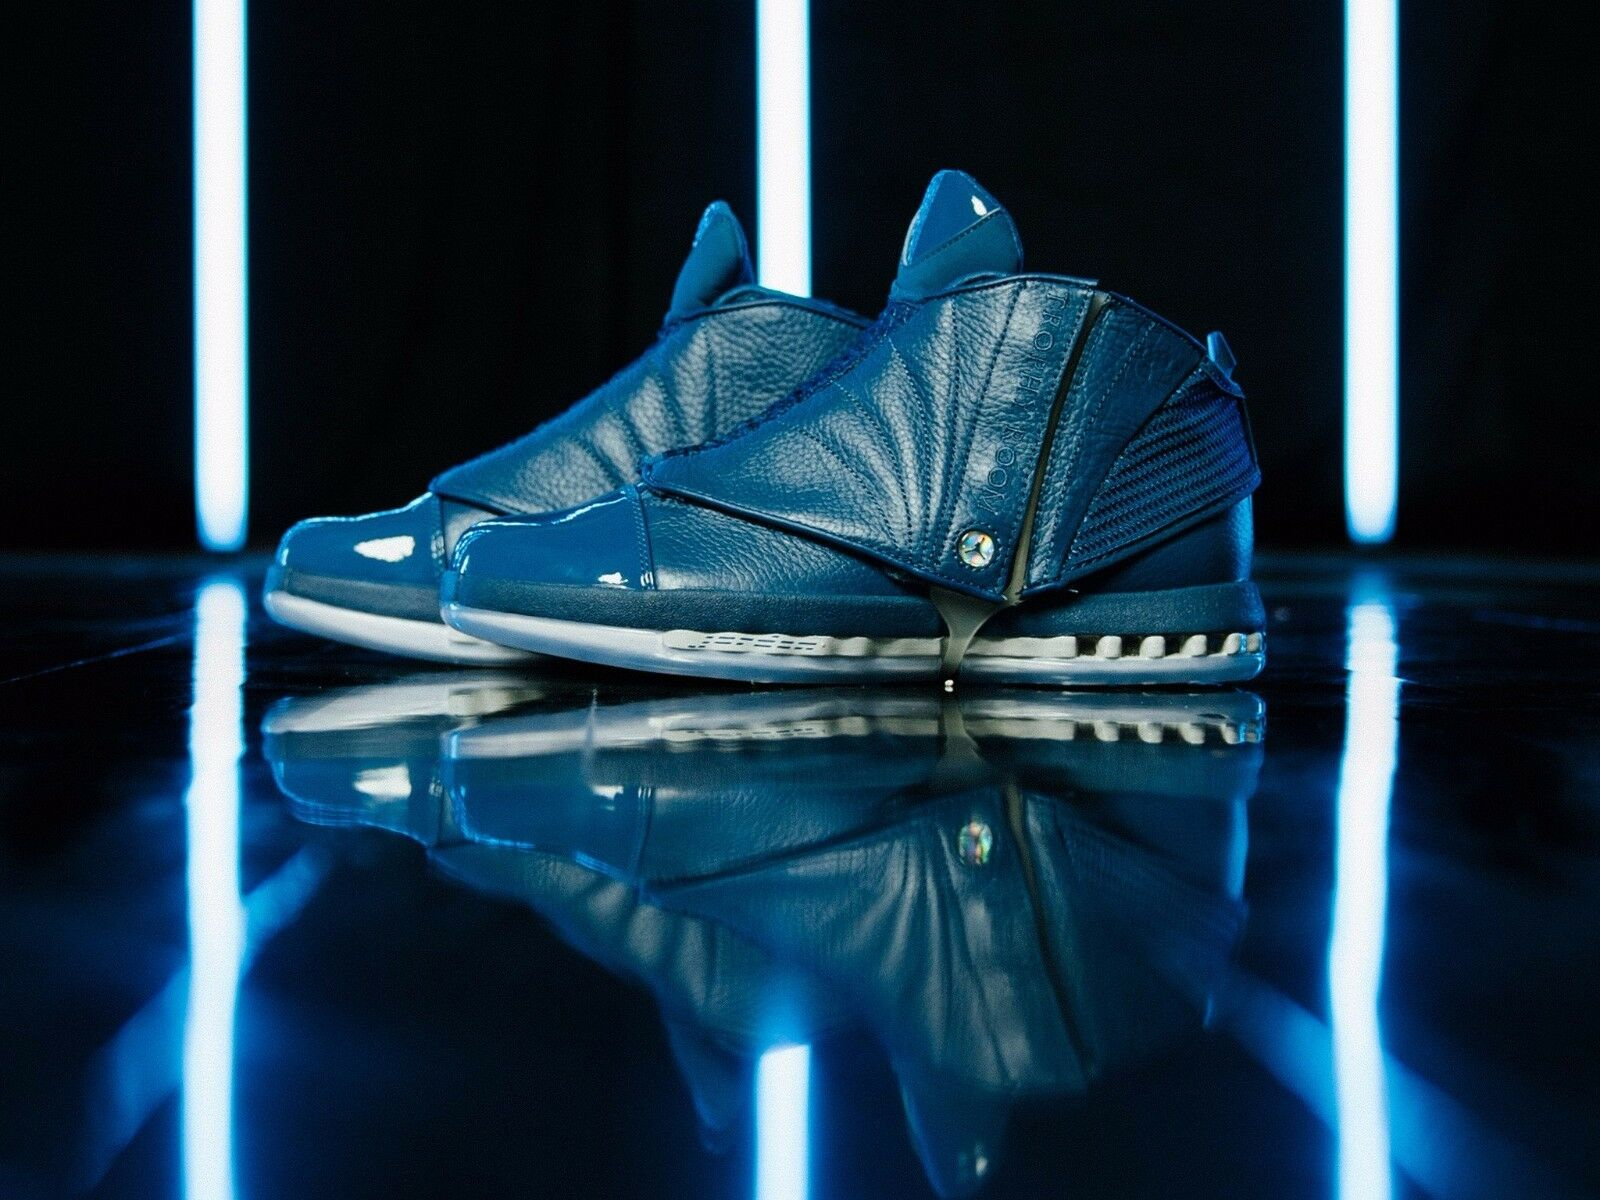 Nike Retro Air Jordan 16 XVI Retro Nike Trophy Room QS size 12. Blue Navy. 854255-416. 61c45d